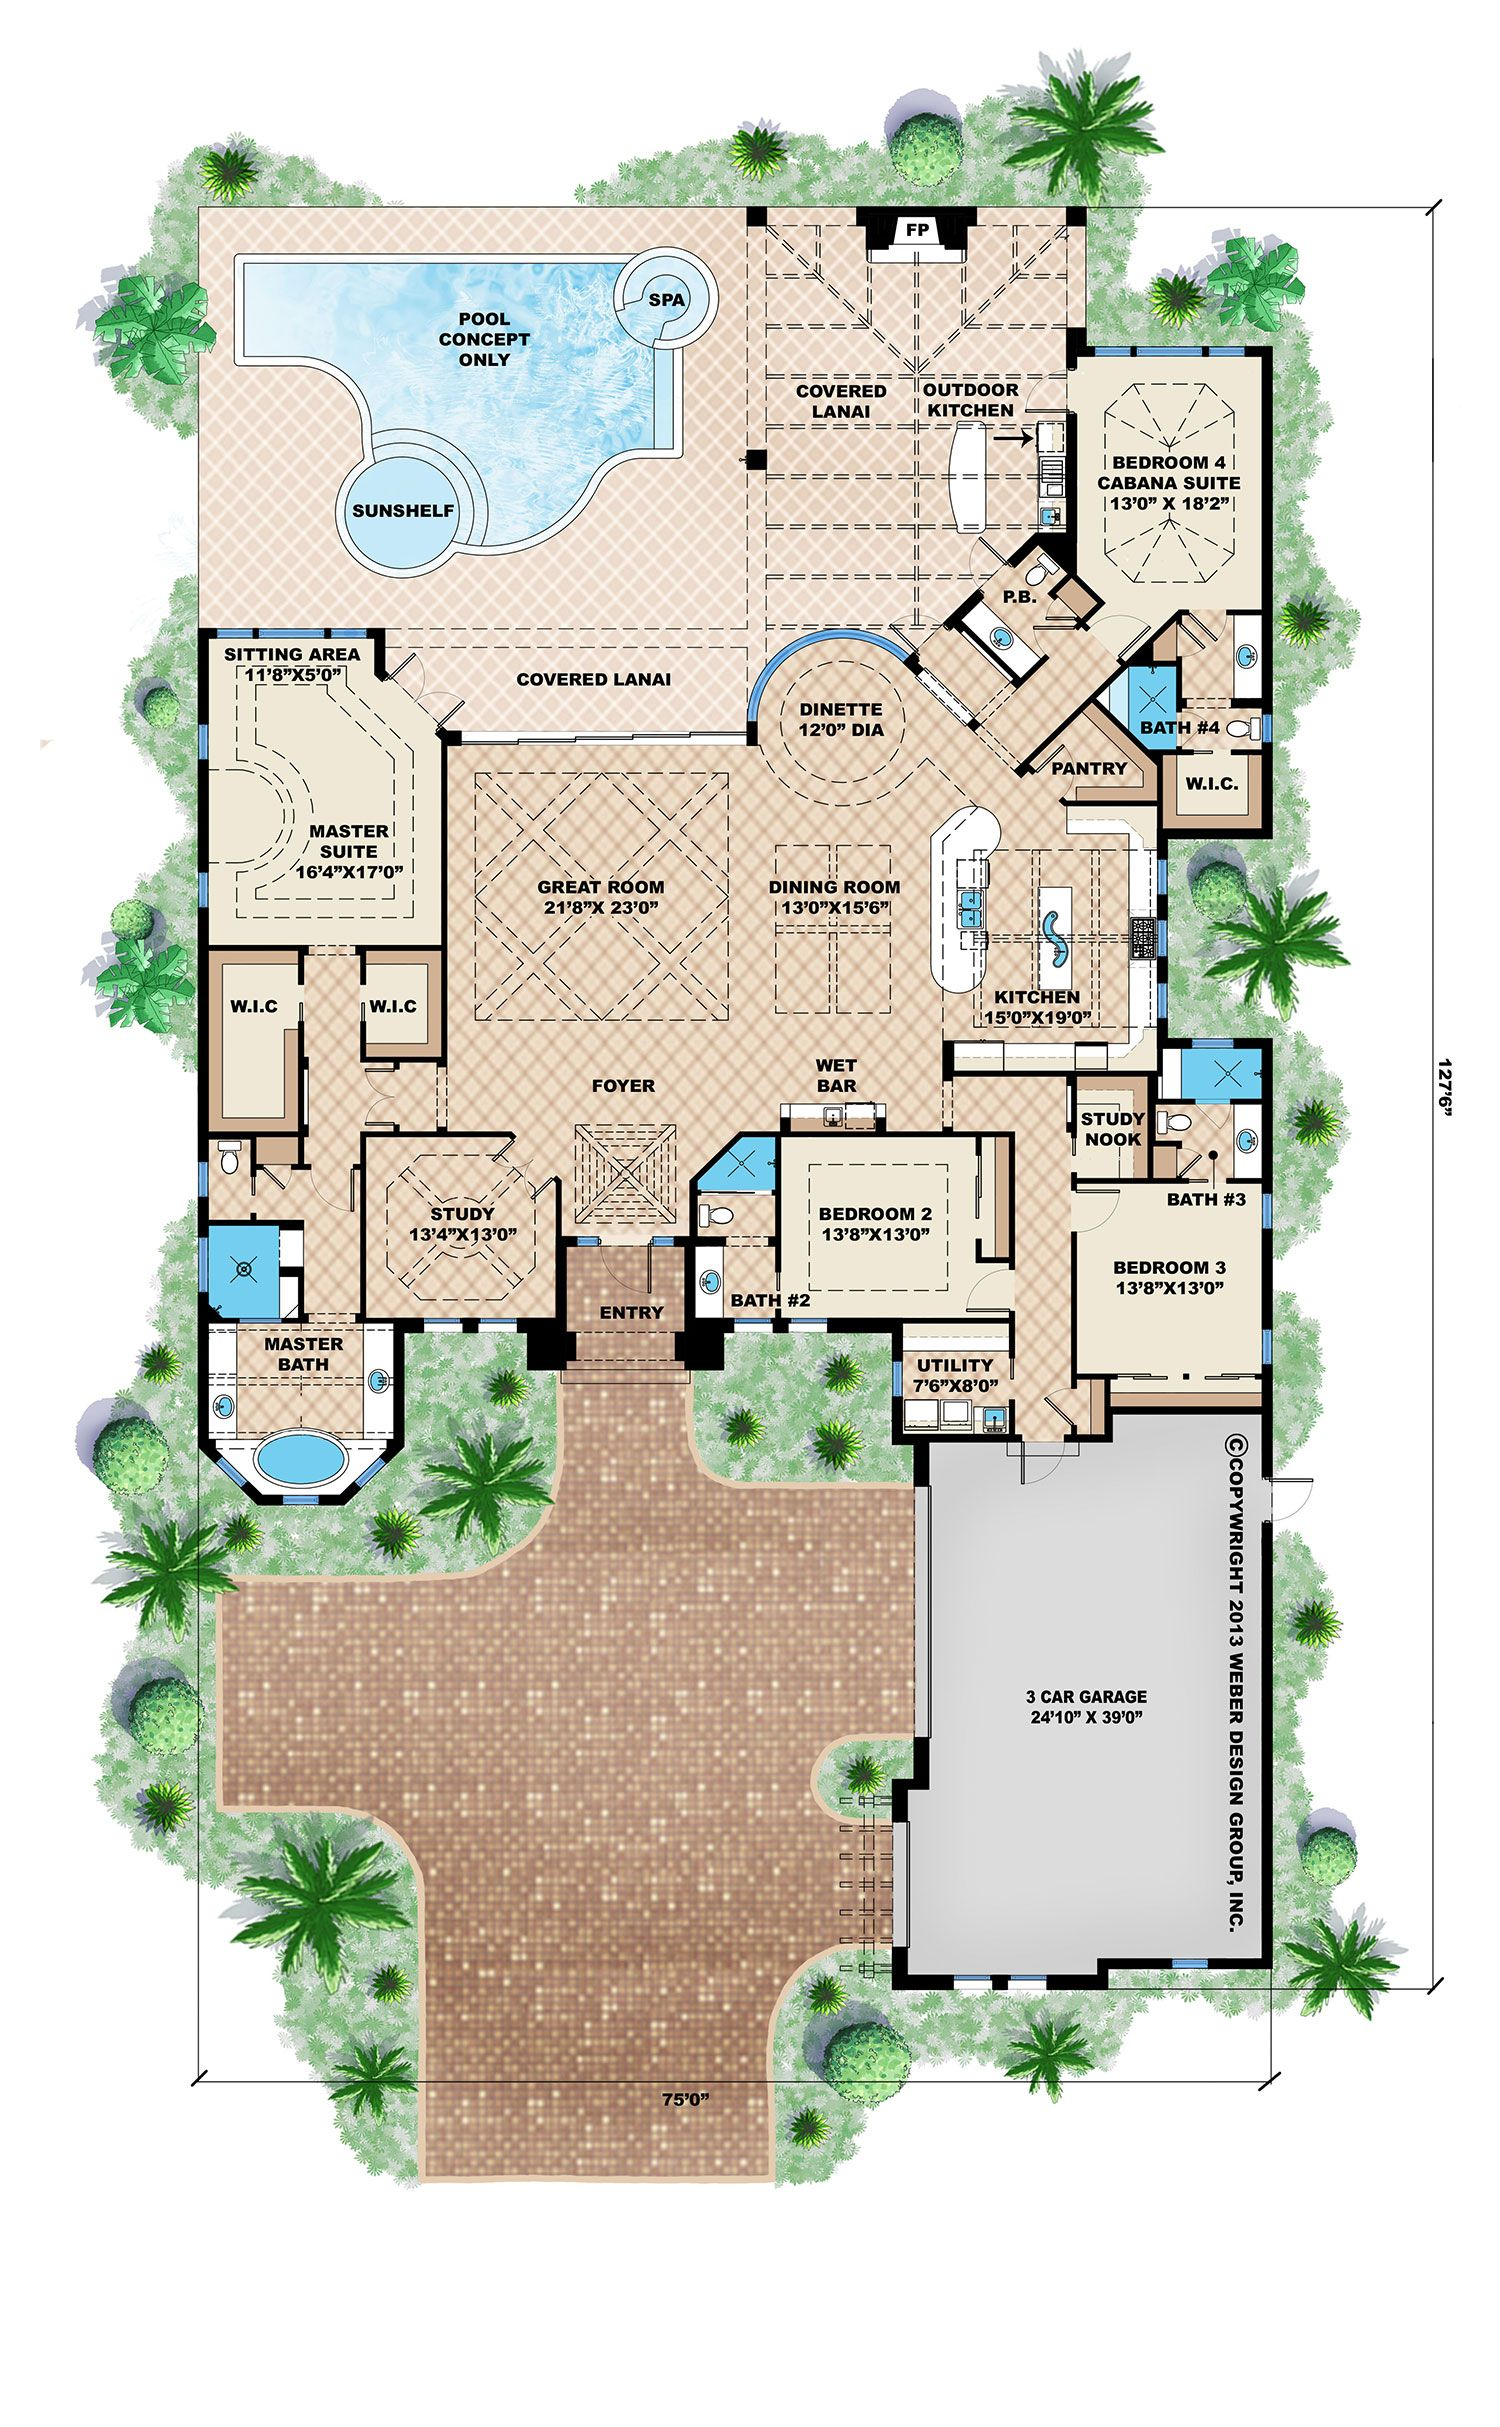 Mediterranean House Plan Coastal Contemporary Beach Home Plan Mediterranean Style House Plans Florida House Plans Luxury House Plans